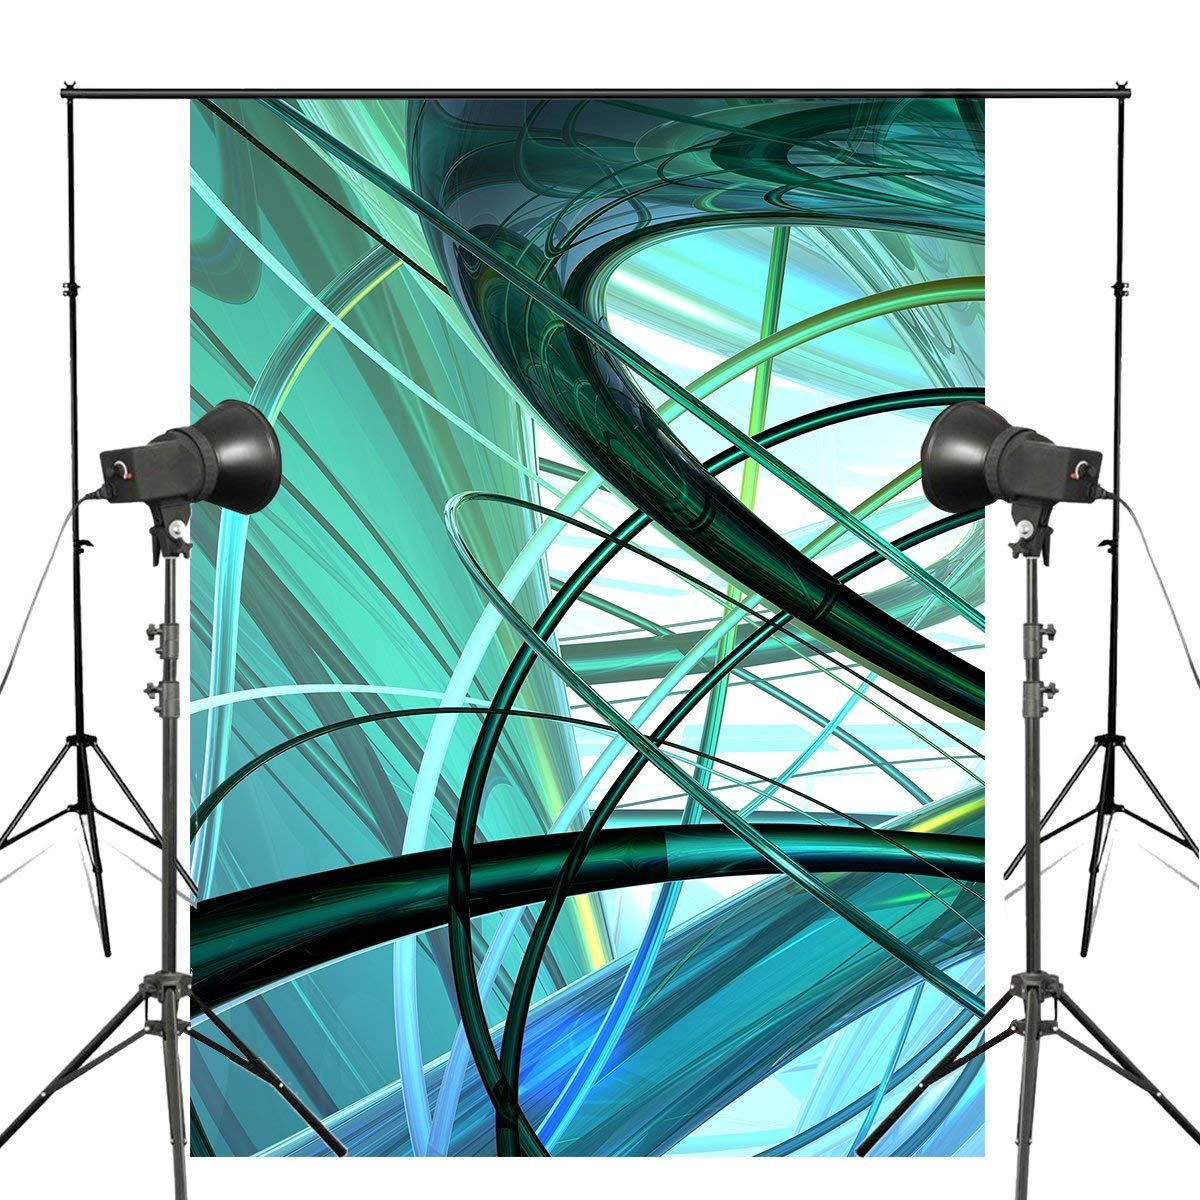 5x7ft Three-dimensional Photography Backdrops Blue Green Line Backdrops for picture Abstract Art Photography Studio Props5x7ft Three-dimensional Photography Backdrops Blue Green Line Backdrops for picture Abstract Art Photography Studio Props